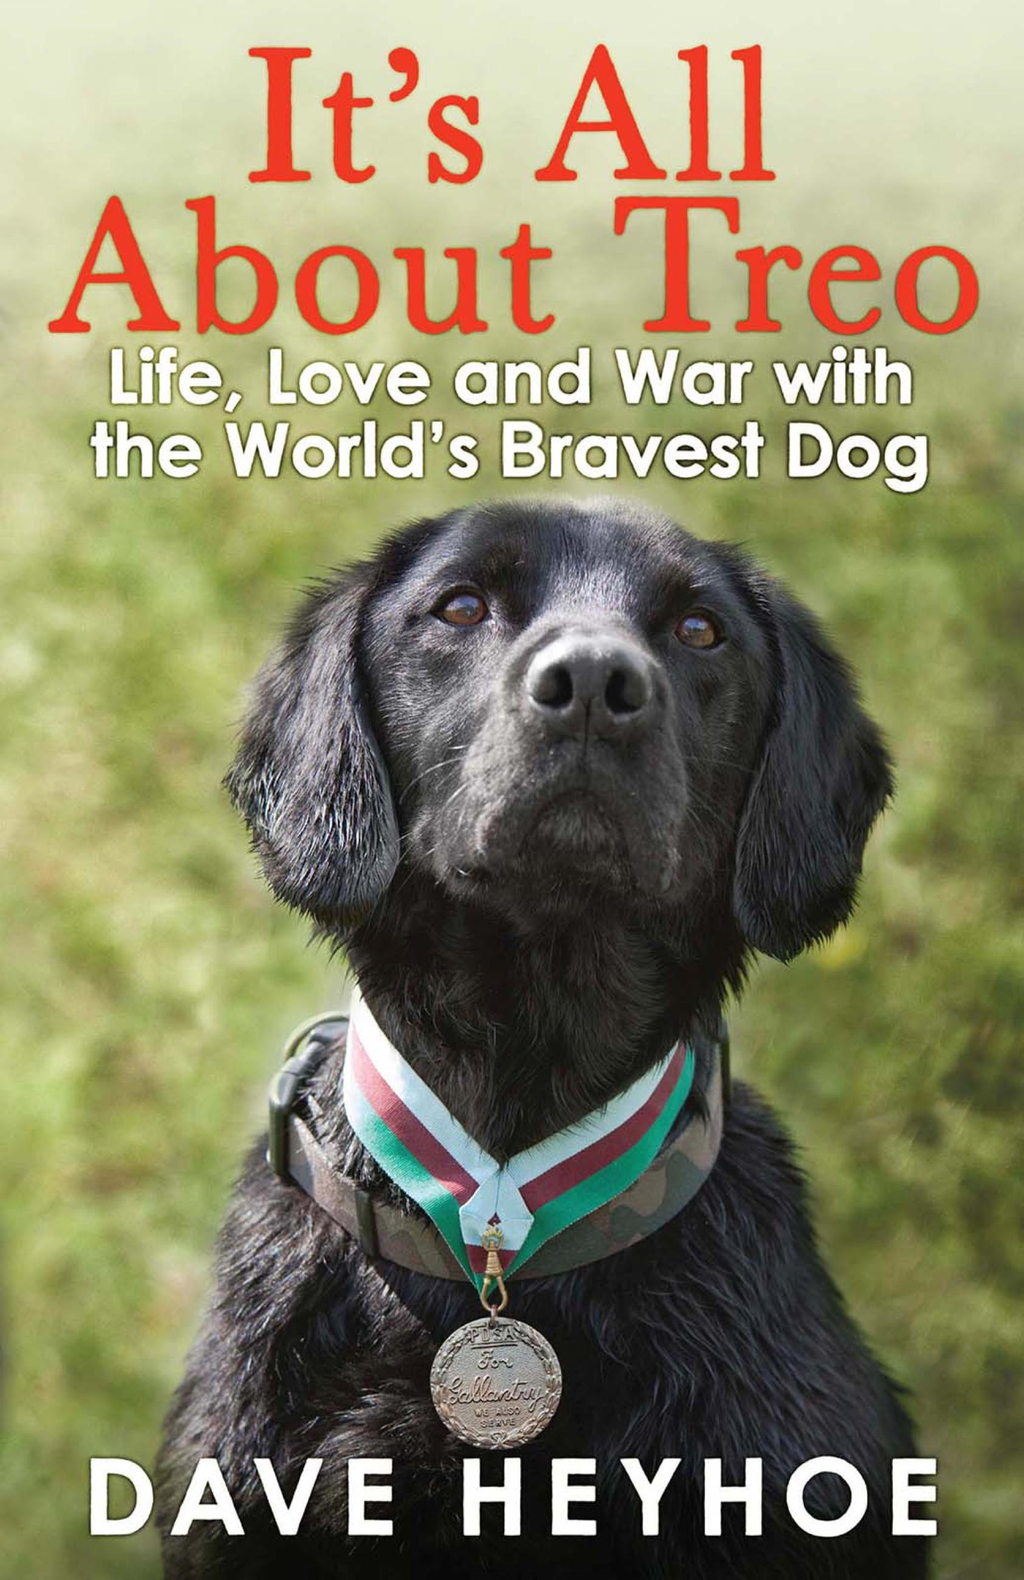 It's All About Treo Life and War with the World's Bravest Dog